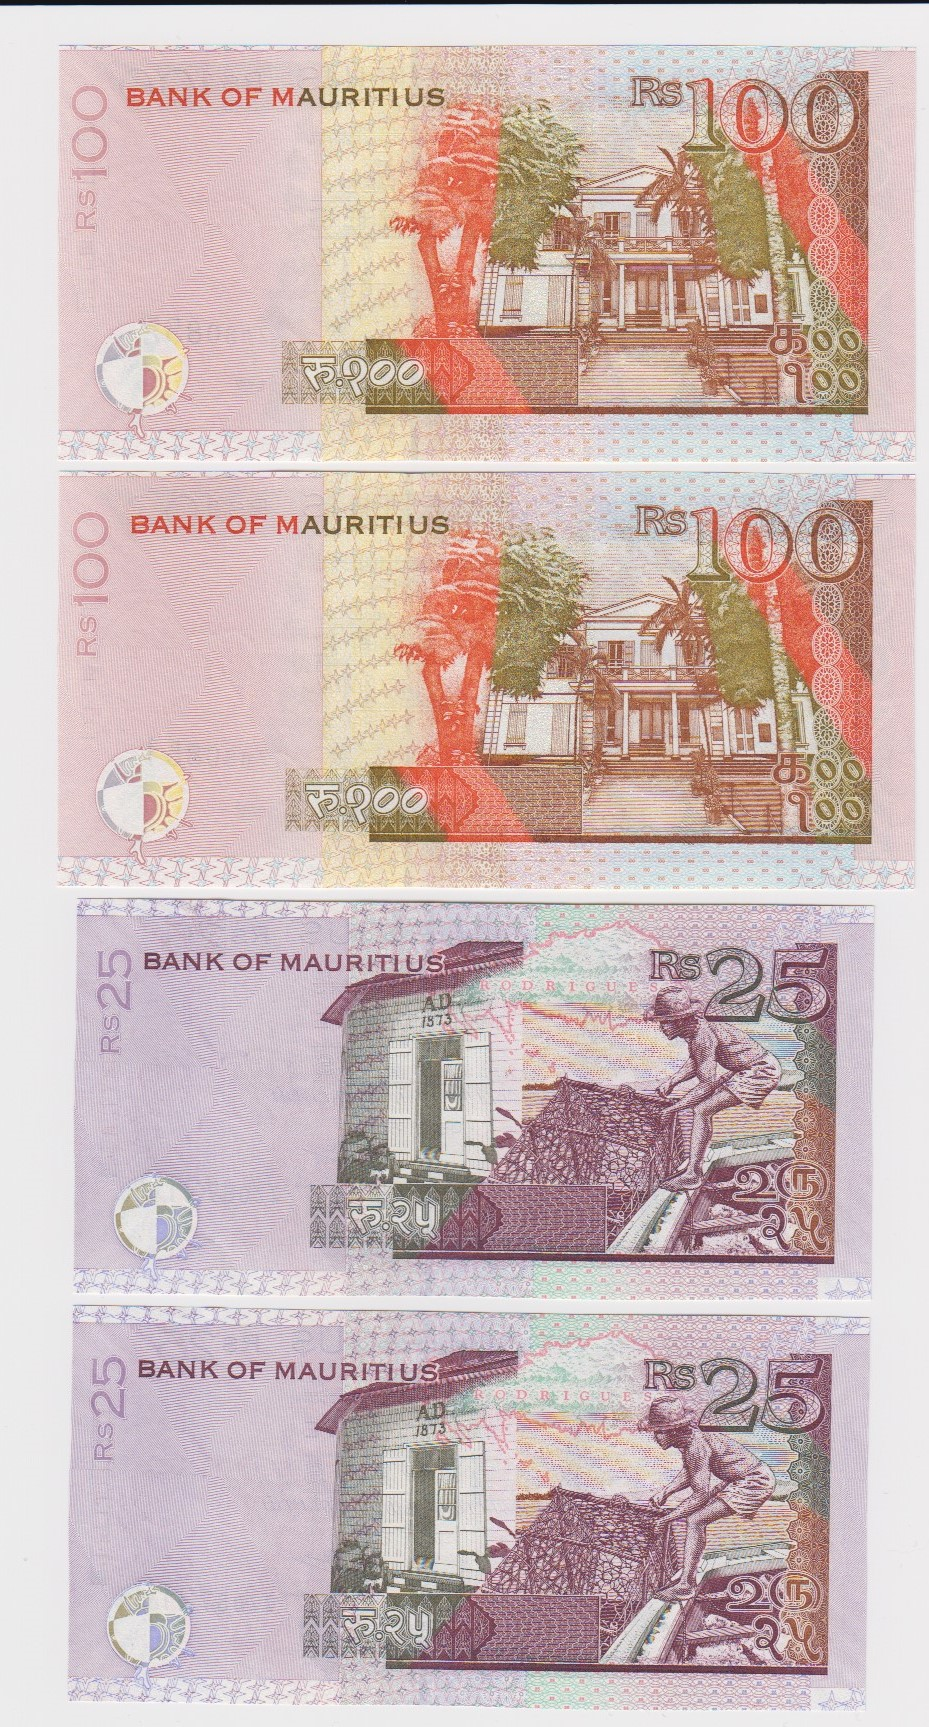 Mauritius REPLACEMENT notes (4), 100 rupees dated 2007 a consecutively numbered pair, serial ZZ - Image 2 of 2